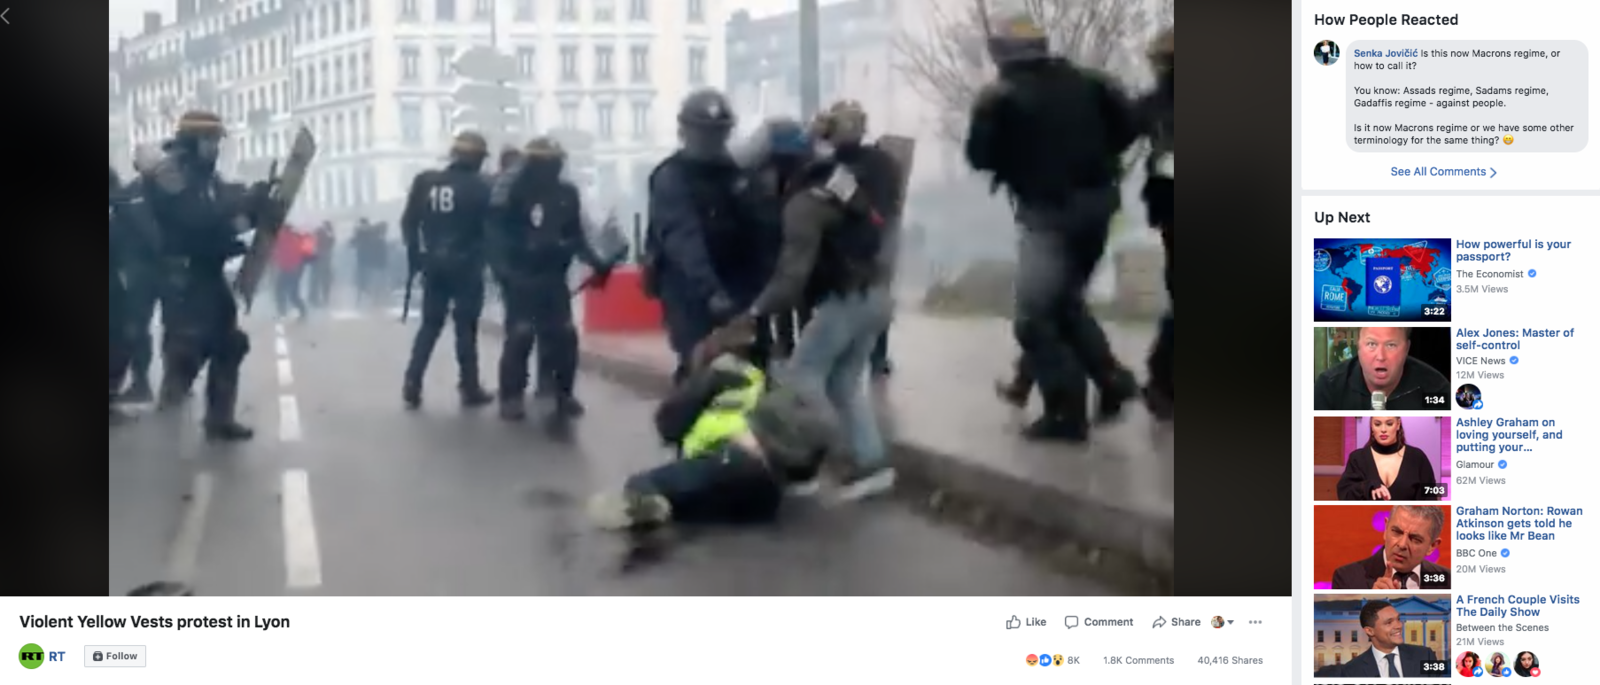 RT's video of police brutality during a Yellow Vest demonstration in Lyon, France.